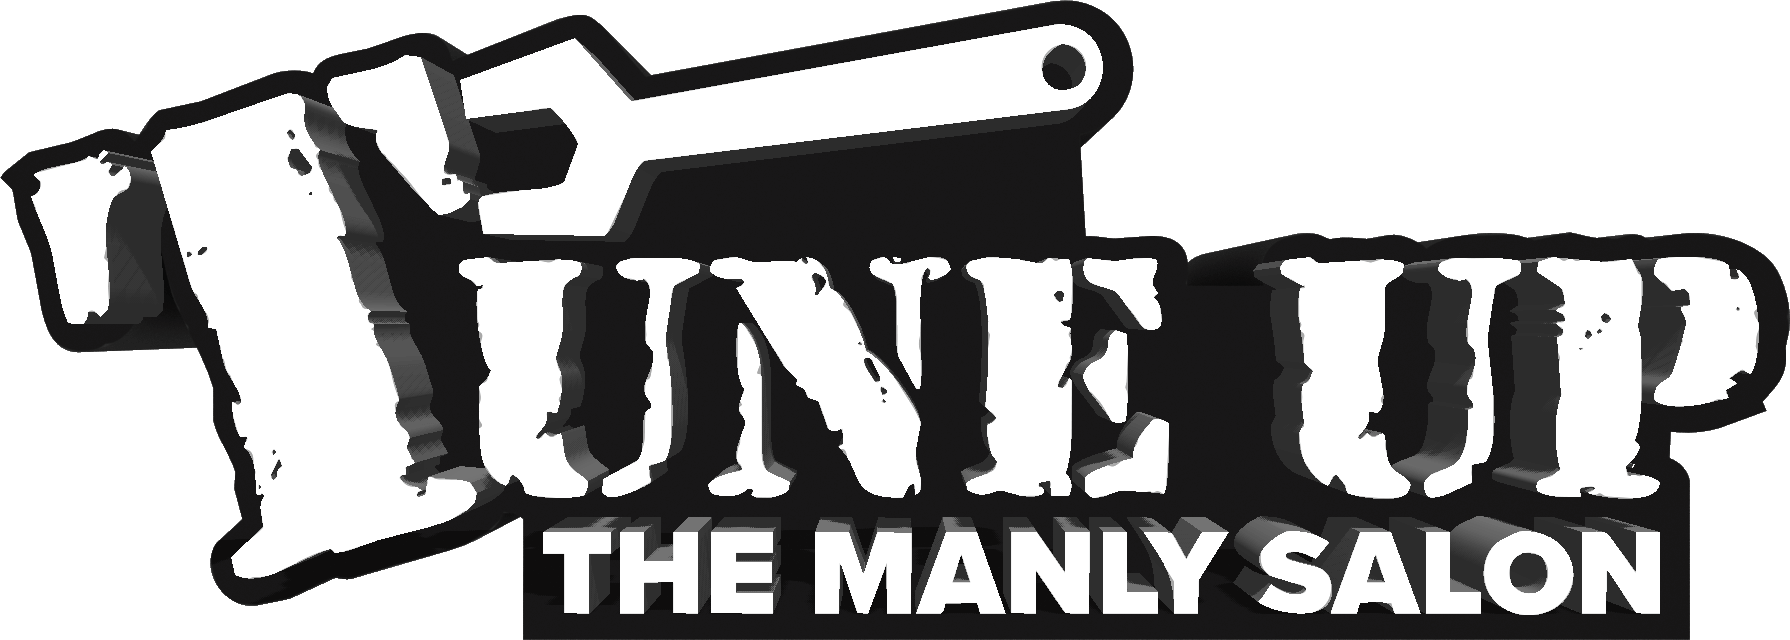 Tune up the manly. Coupon clipart hair salon